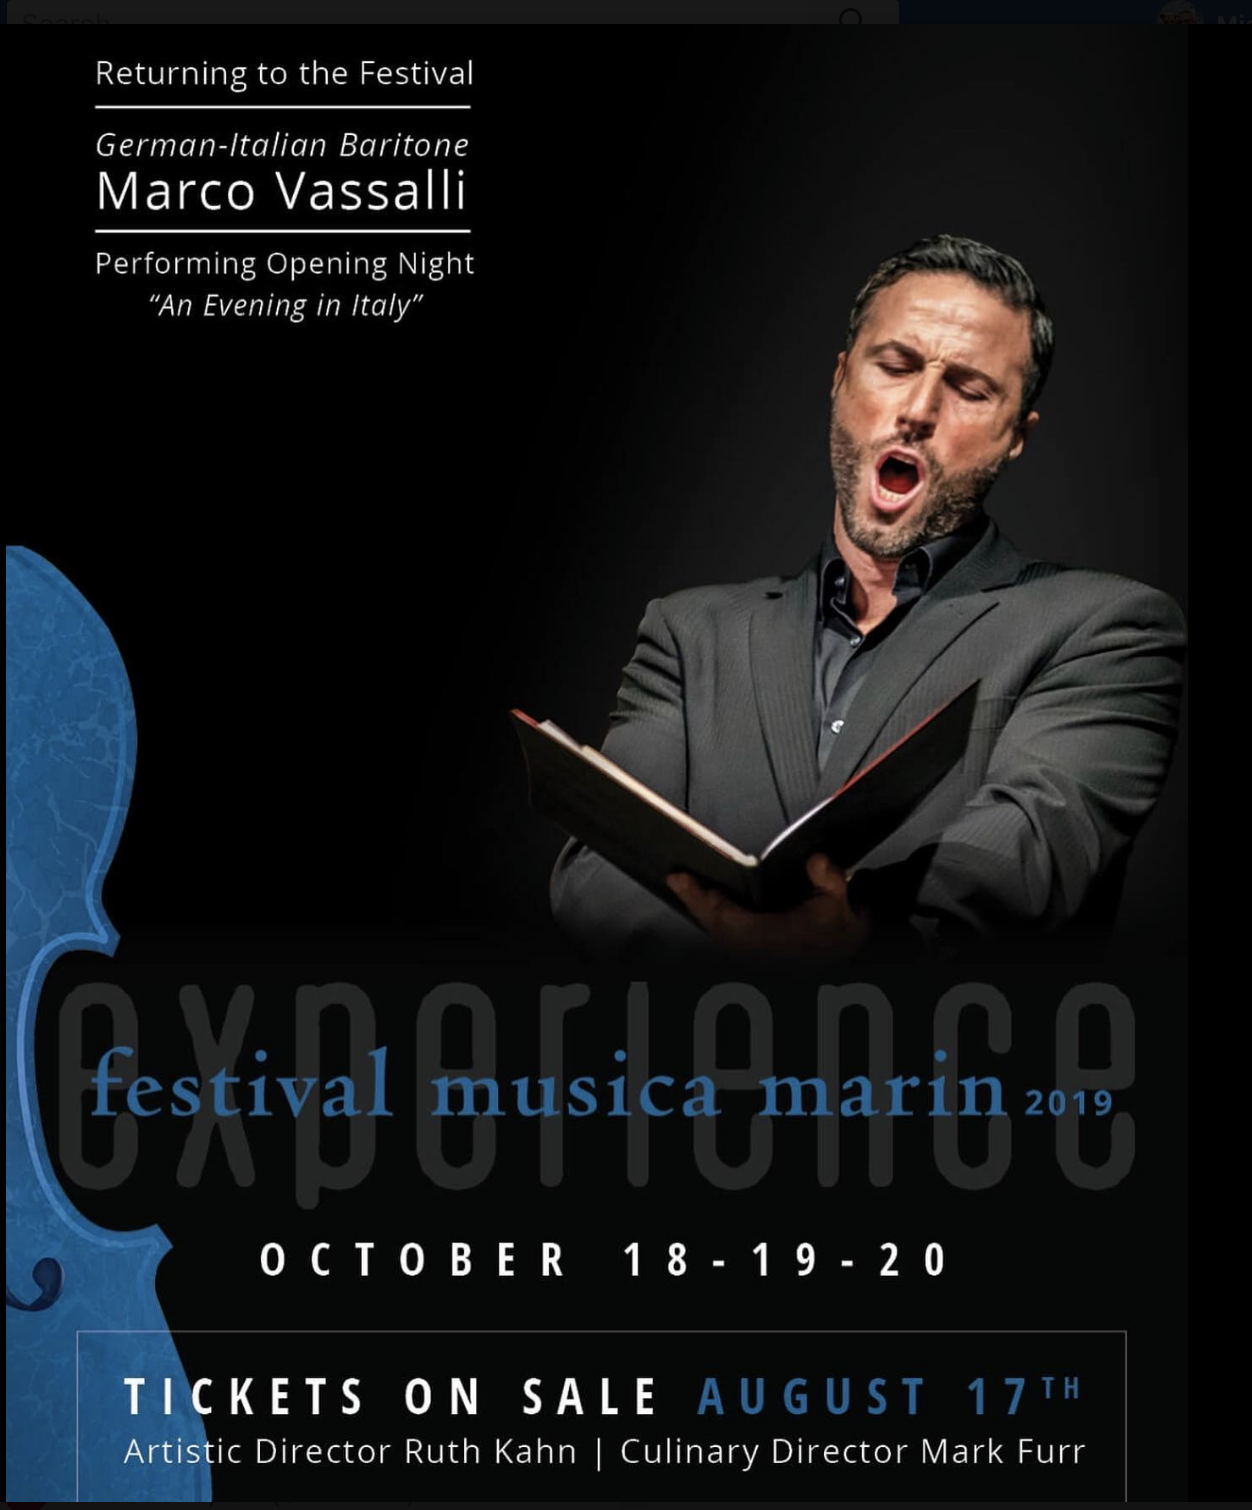 MARCO VASSALLI'S ONLY 2019 U.S. APPEARANCE